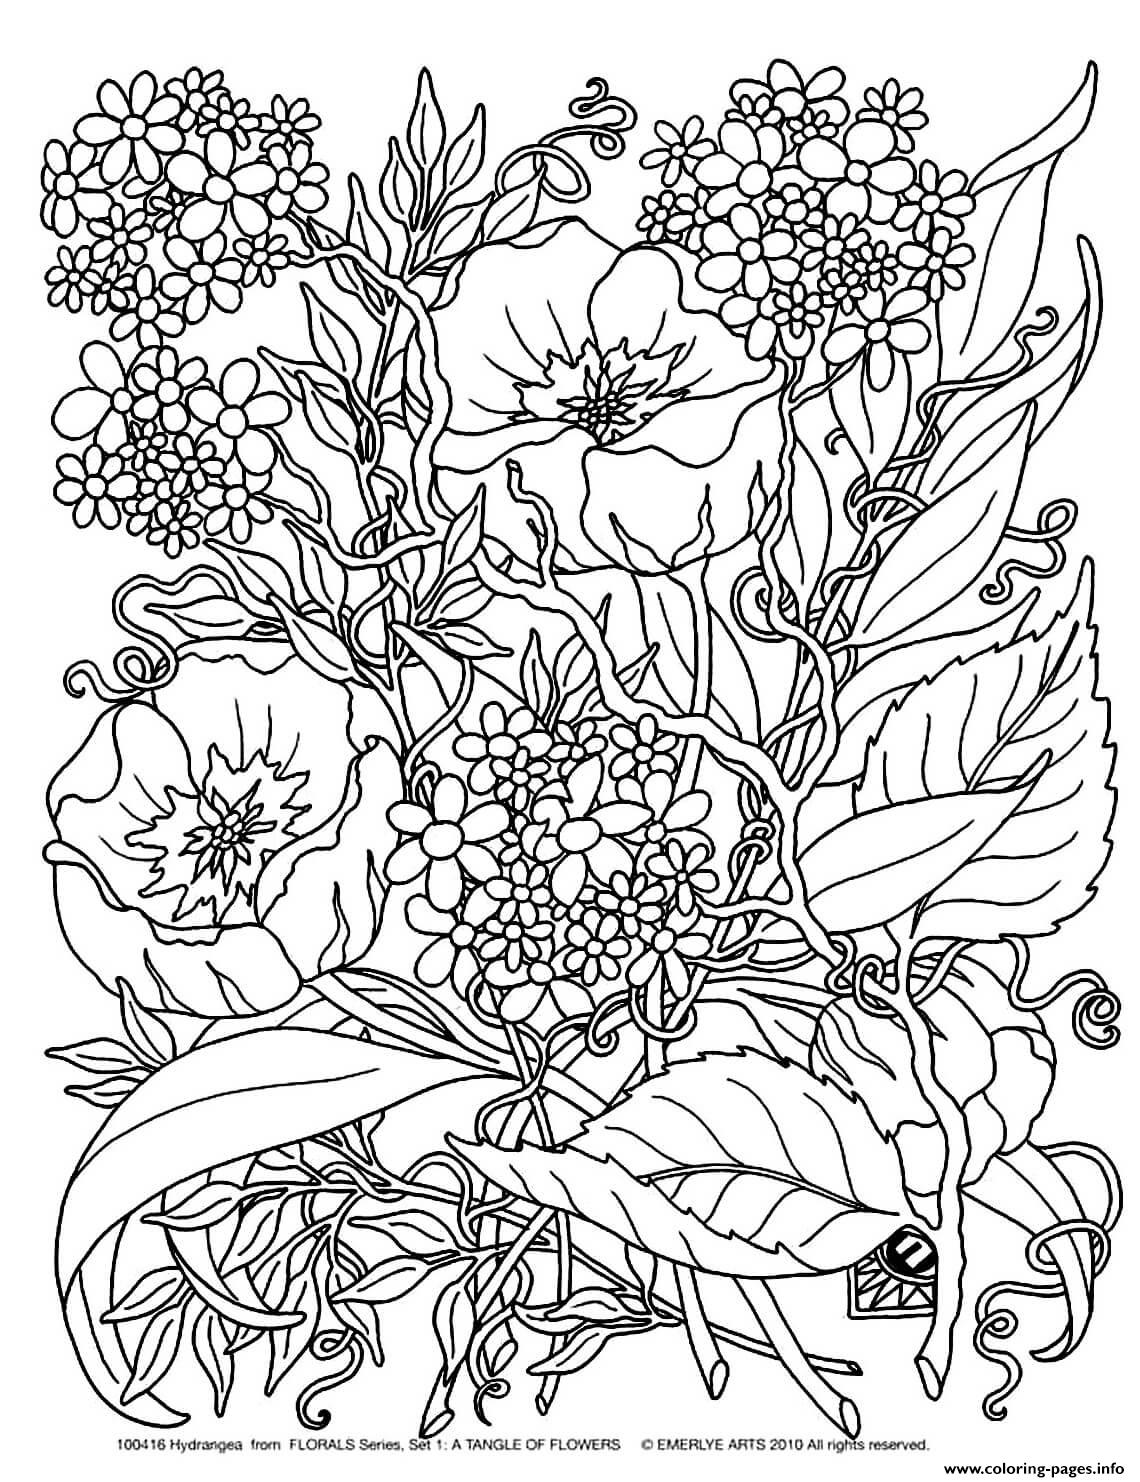 - Adult Savage Flowers Coloring Pages Printable